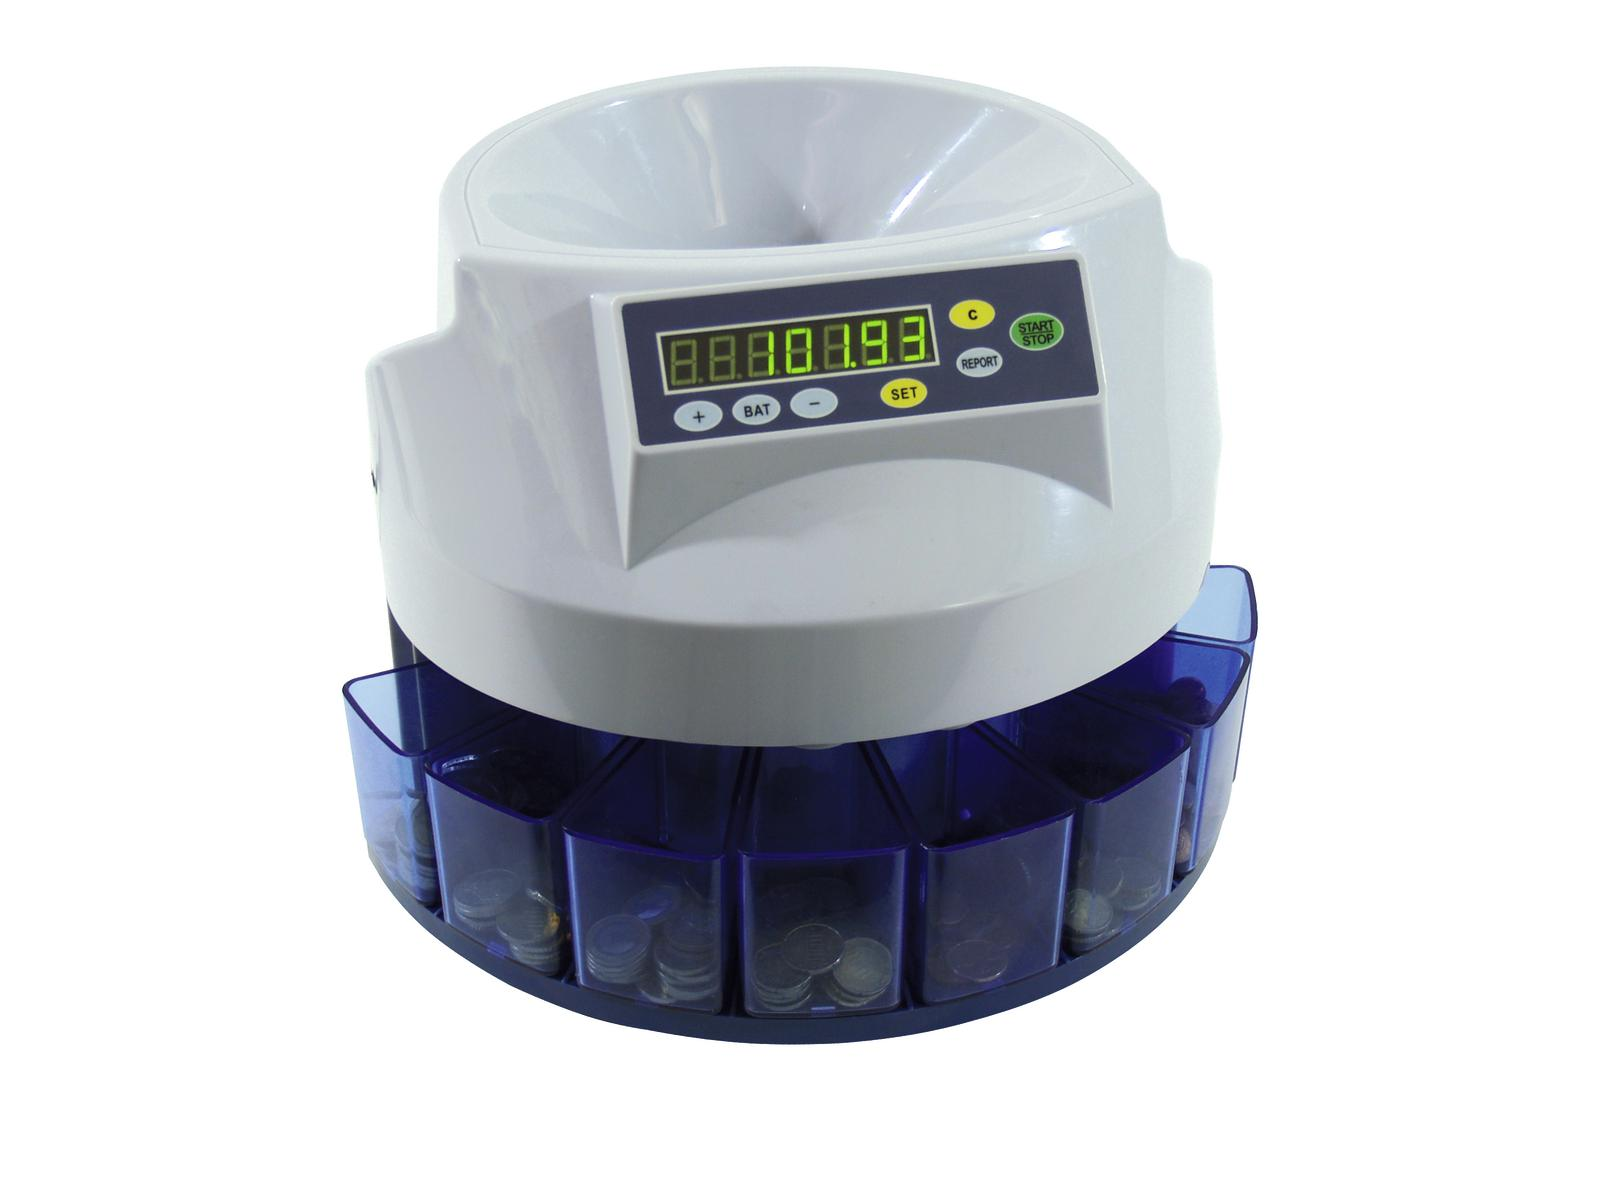 EUROLITE CS-100 Coin counter/s